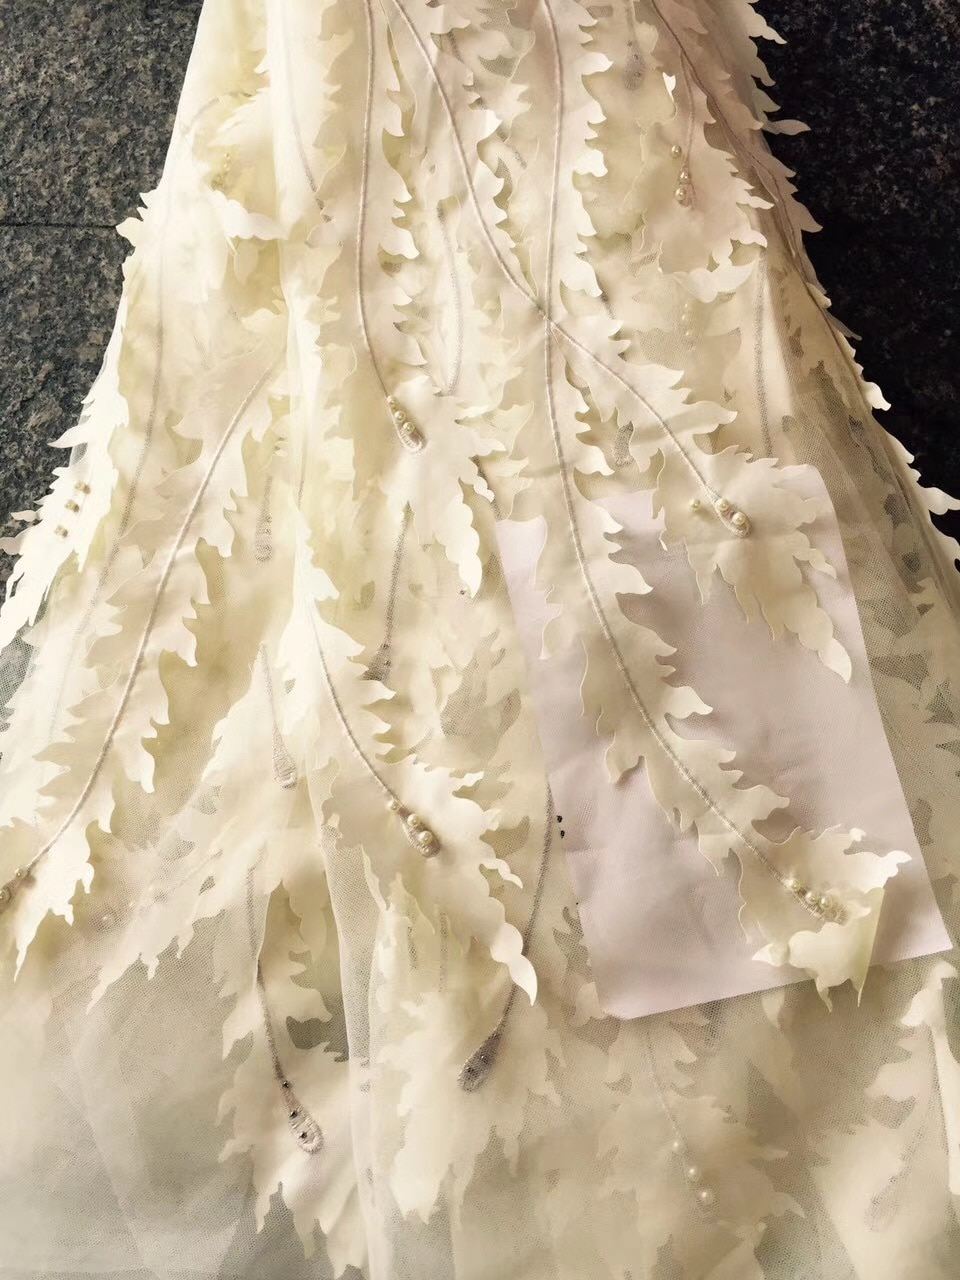 French Lace Fabric with Stones African Lace Fabrics 5 Yards Wholesale Flower Nigerian Lace Fabric for Wedding Dresses CD1822